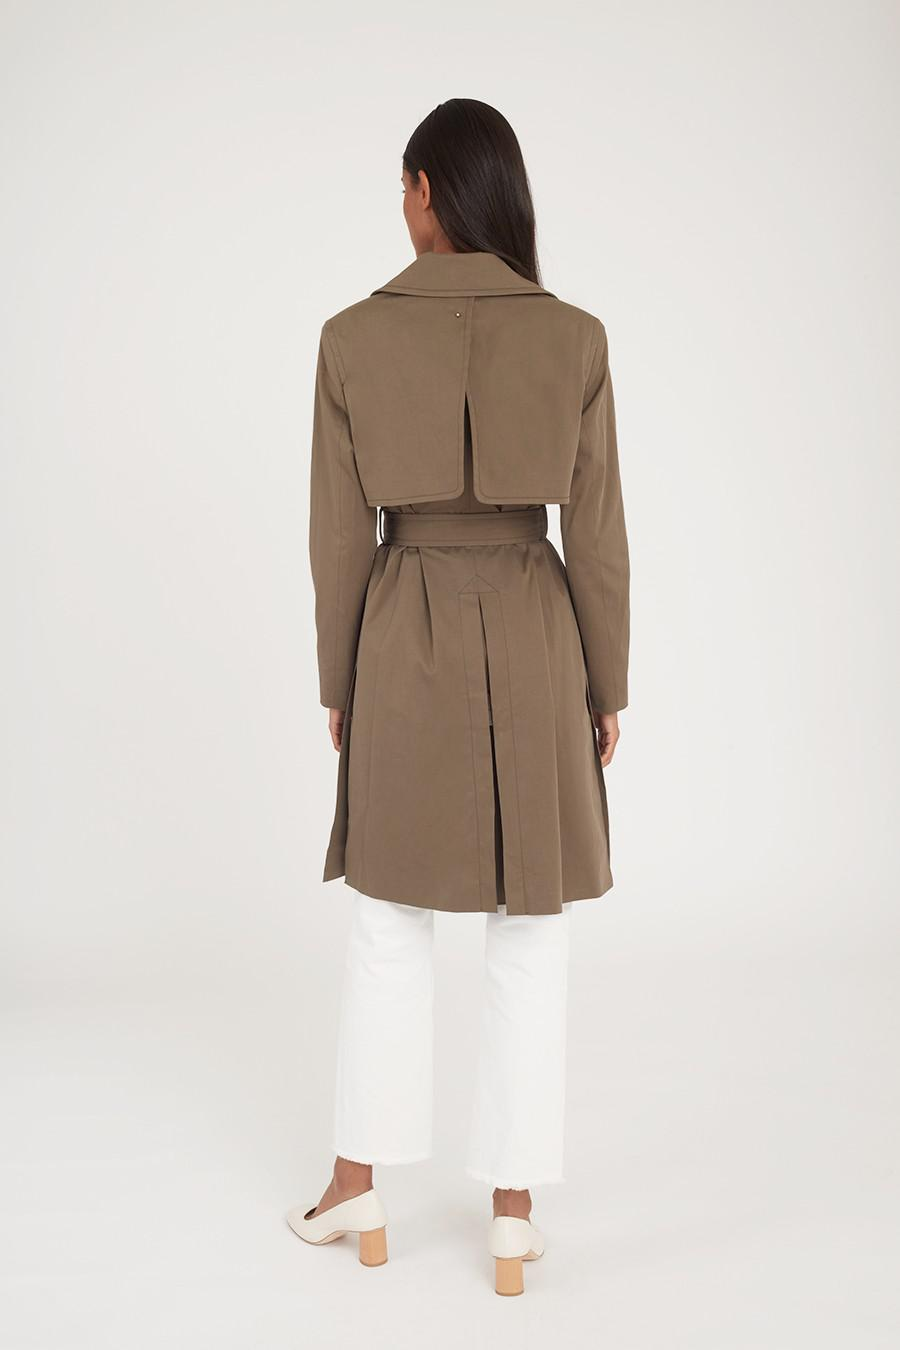 Women's Classic Trench in Olive | Size: 4